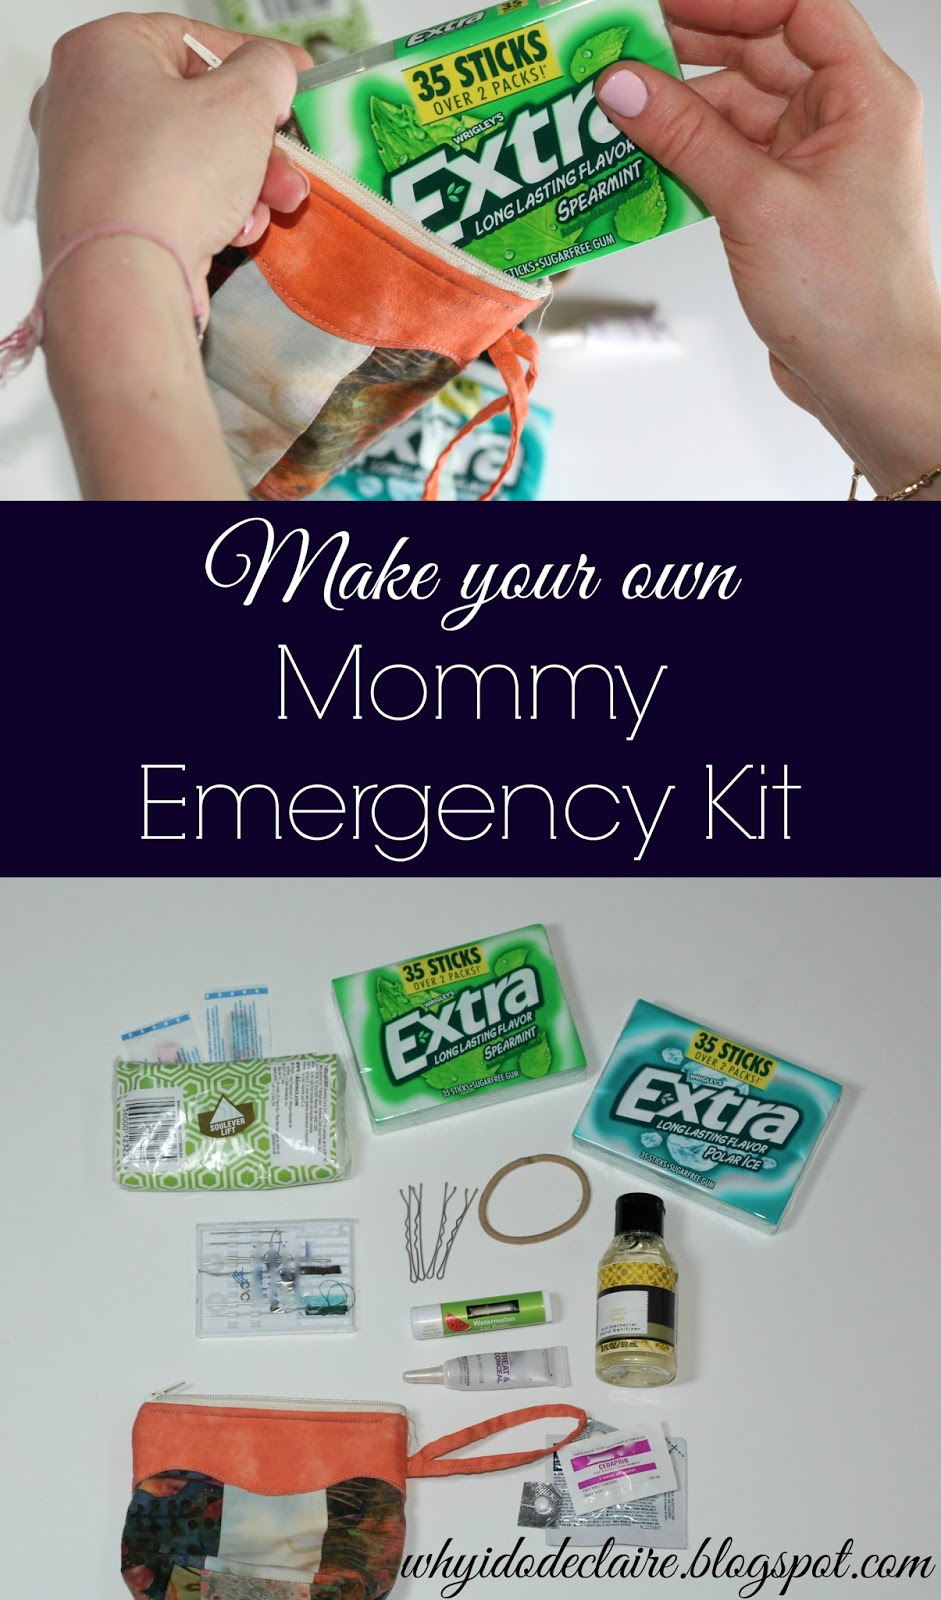 Mommy Emergency kit tutorial with Extra® Gum